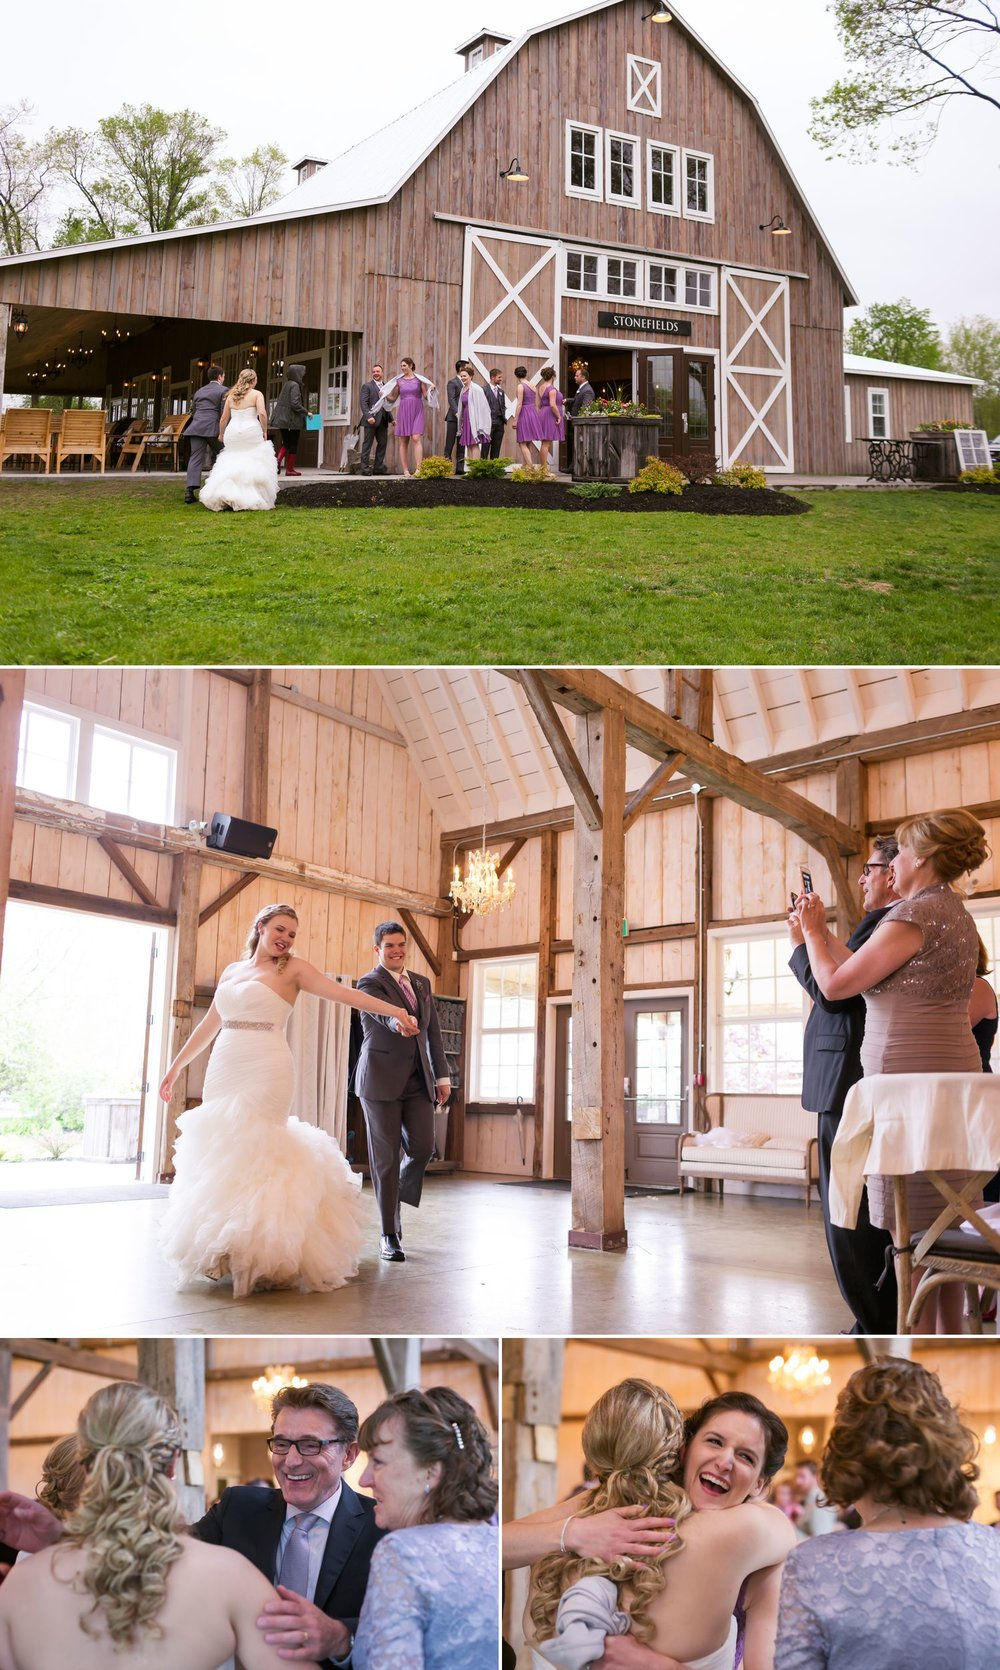 The bride and groom during their entrance into their wedding reception in the newly built barn loft at Stonefields